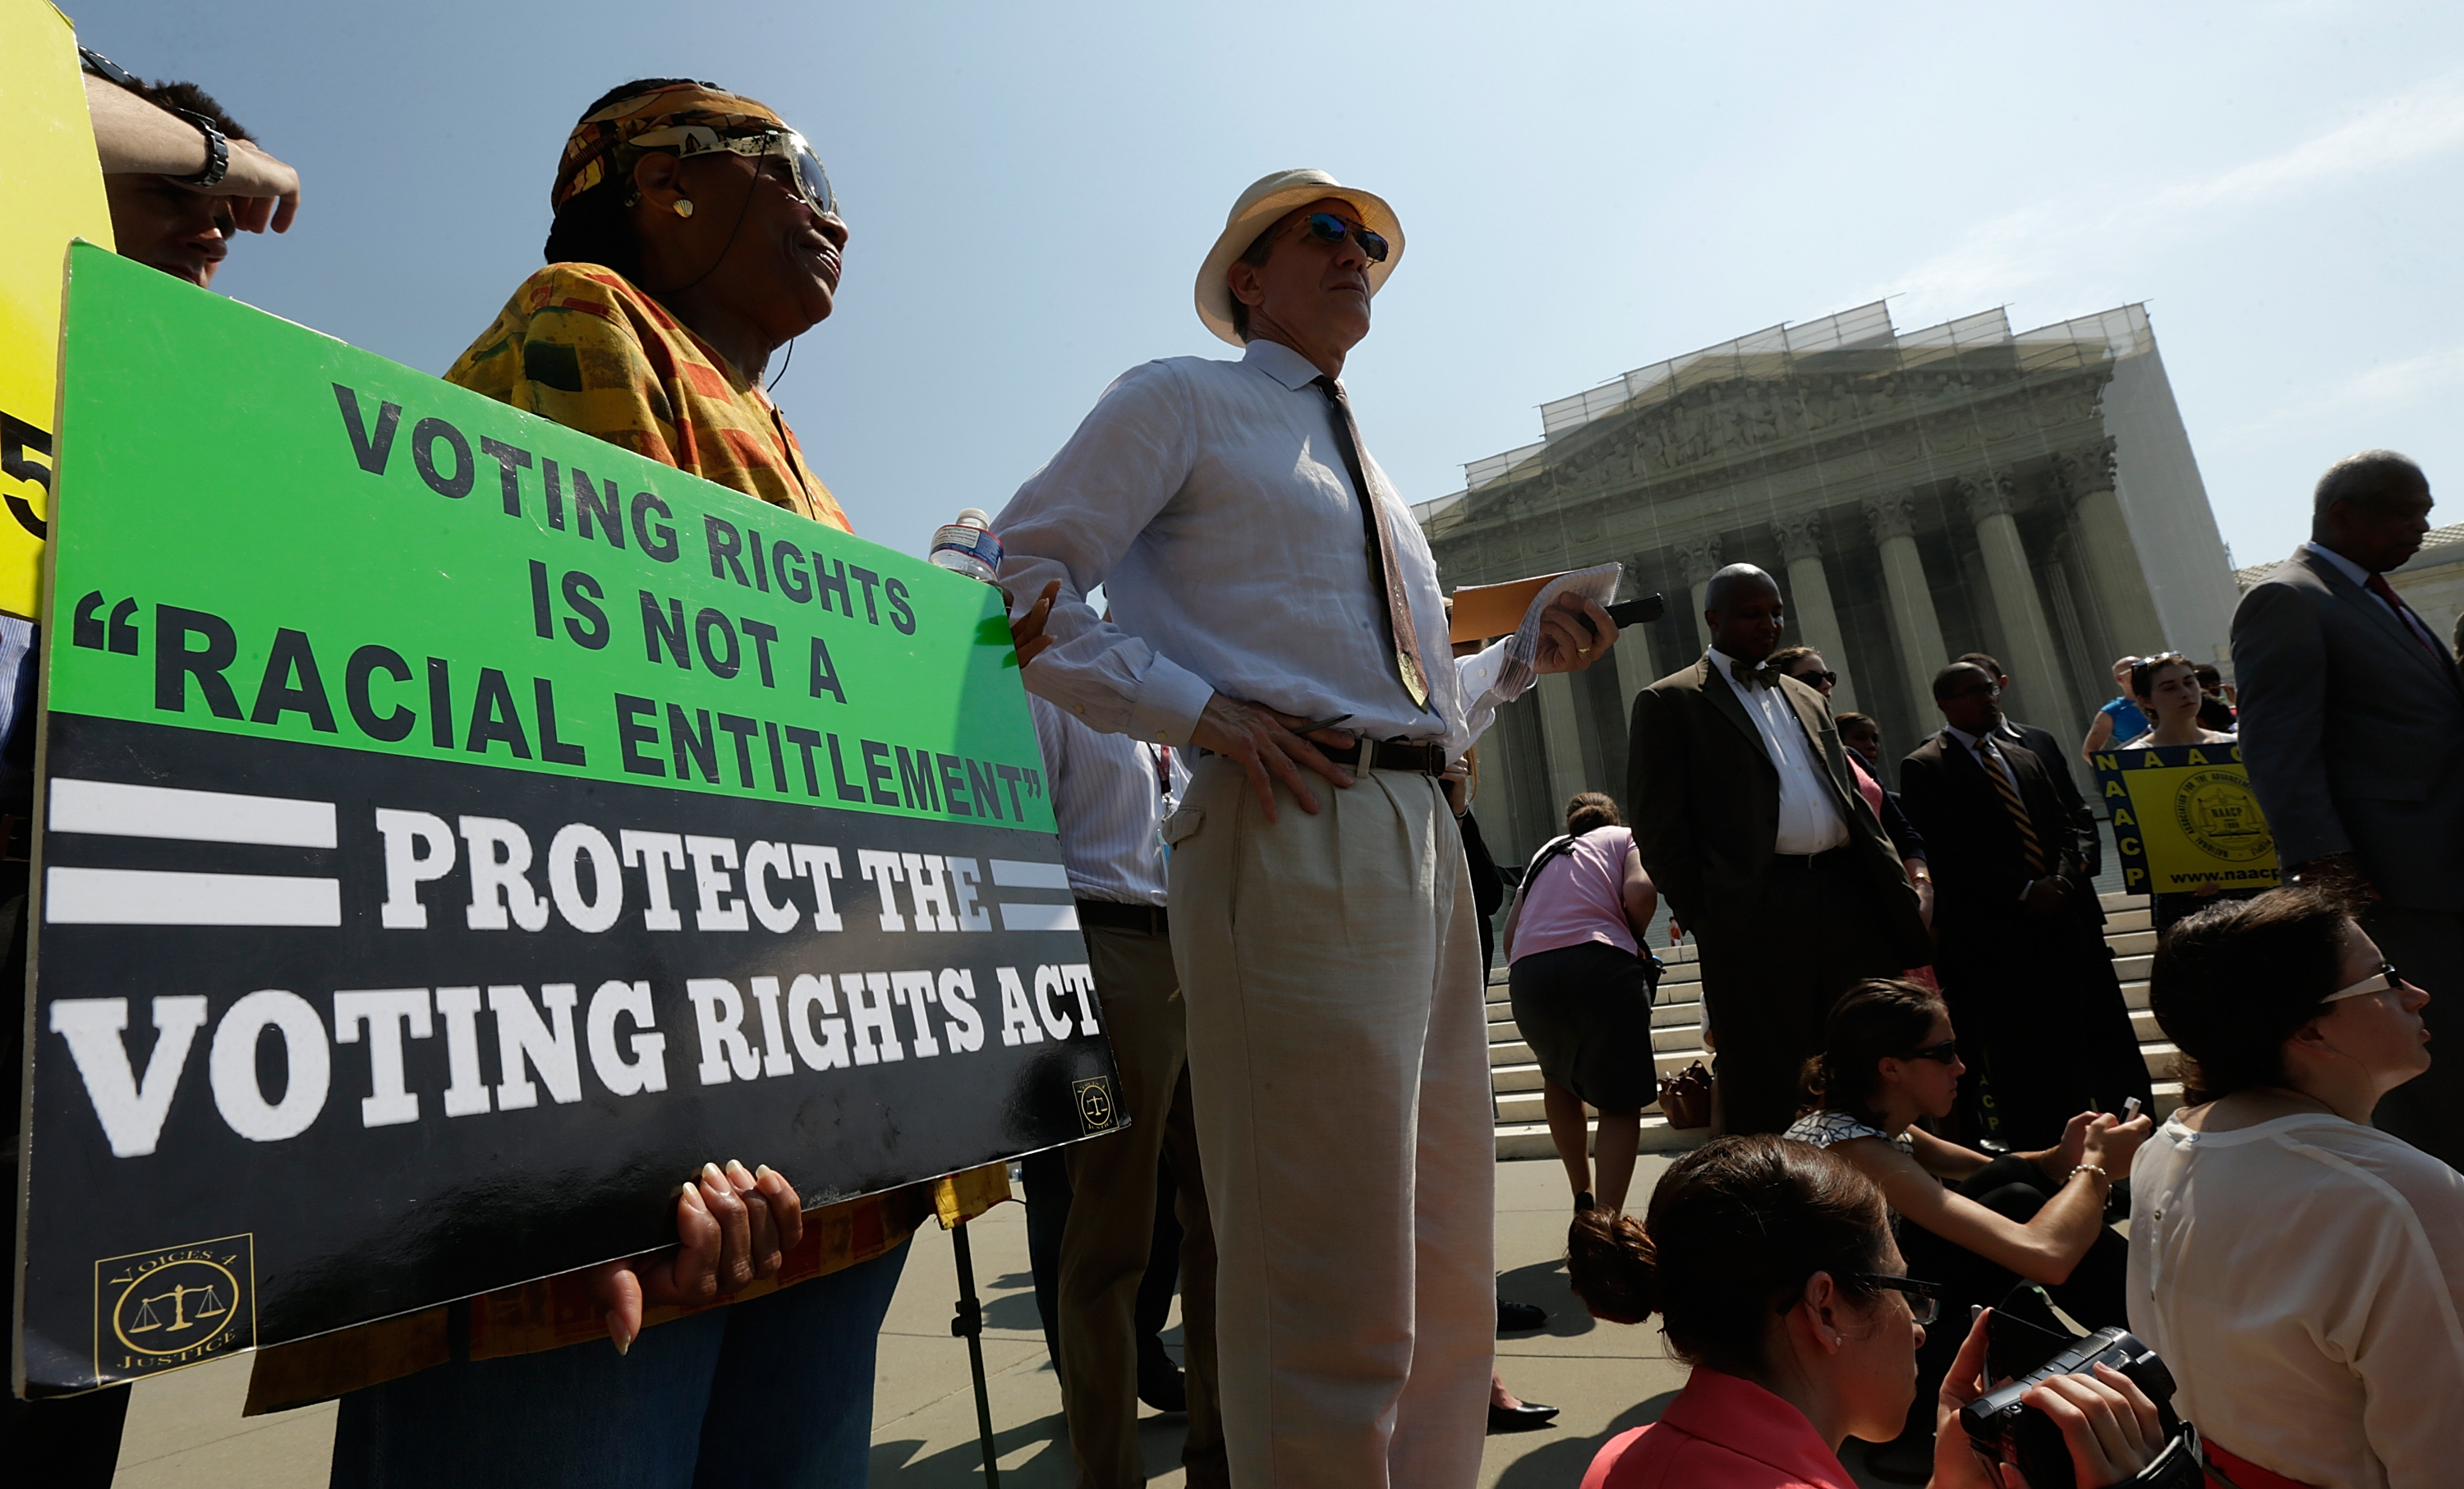 Supporters of the Voting Rights Act waiting outside the U.S. Supreme Court building in Washington after the court struck down a section aimed at protecting minority voters